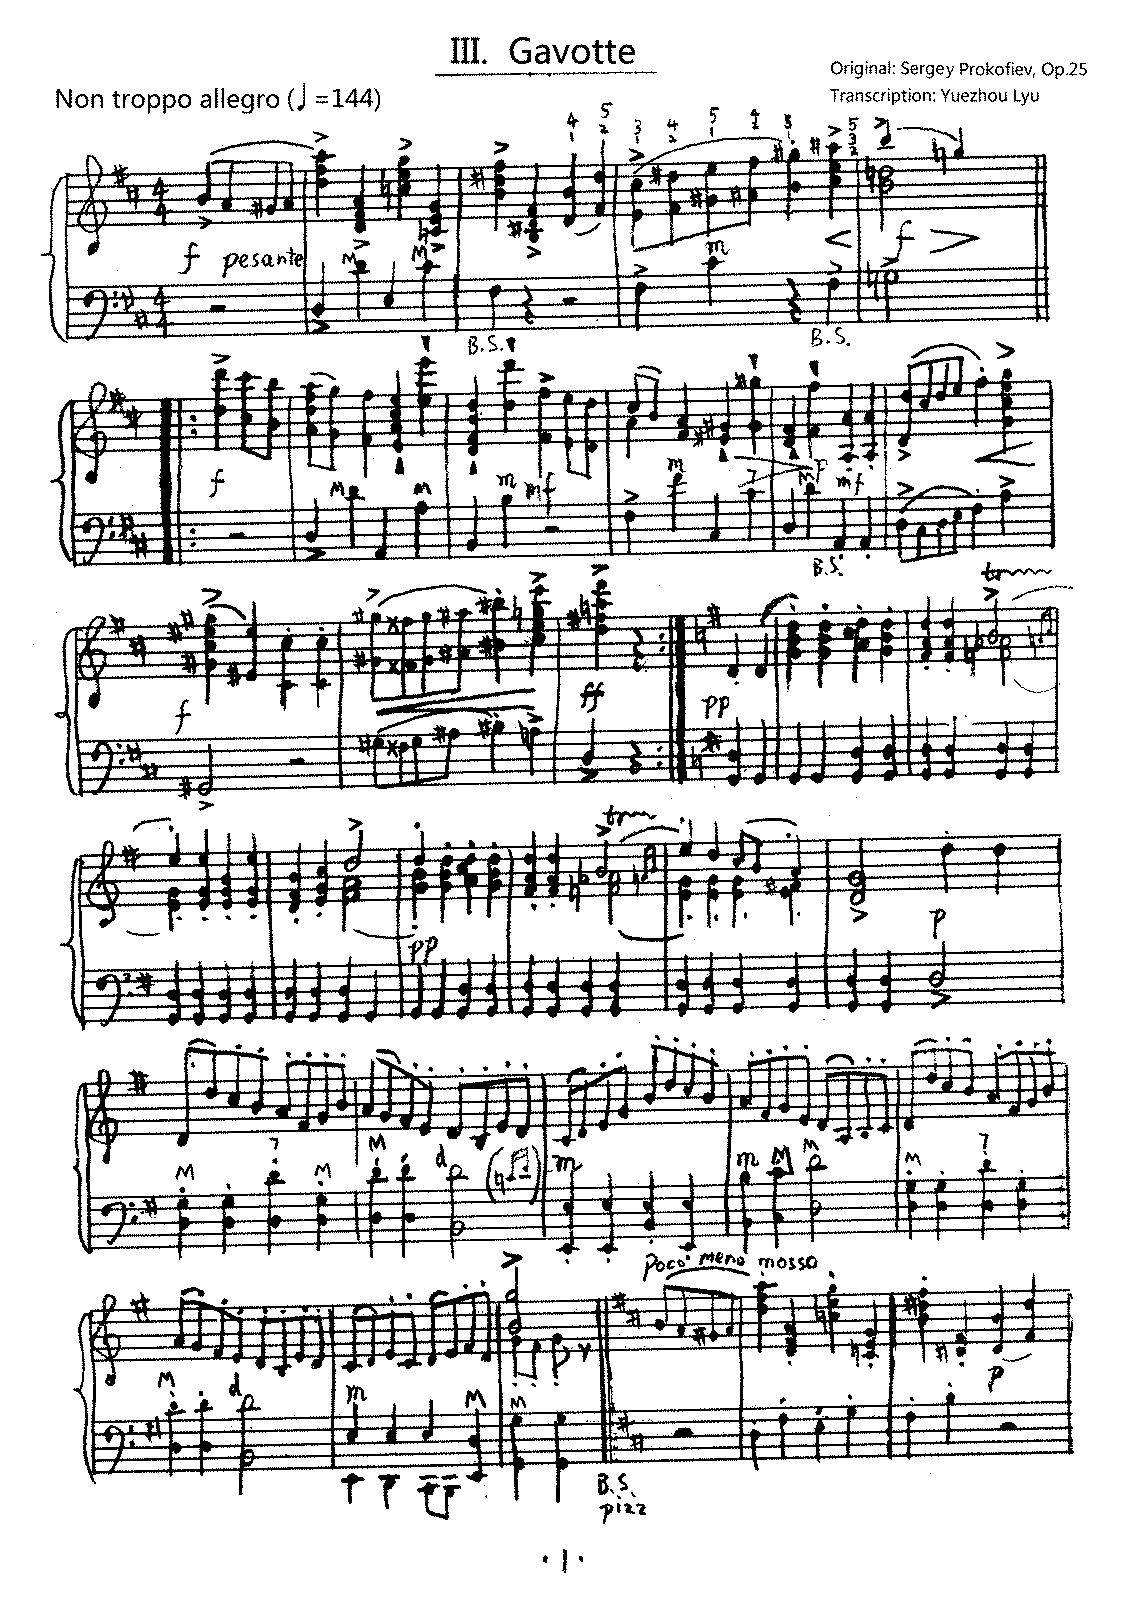 PMLP04505-III. Gavotte-Non troppo allegro, Symphony No.1, Op.25 (Accordion Arrangement).pdf